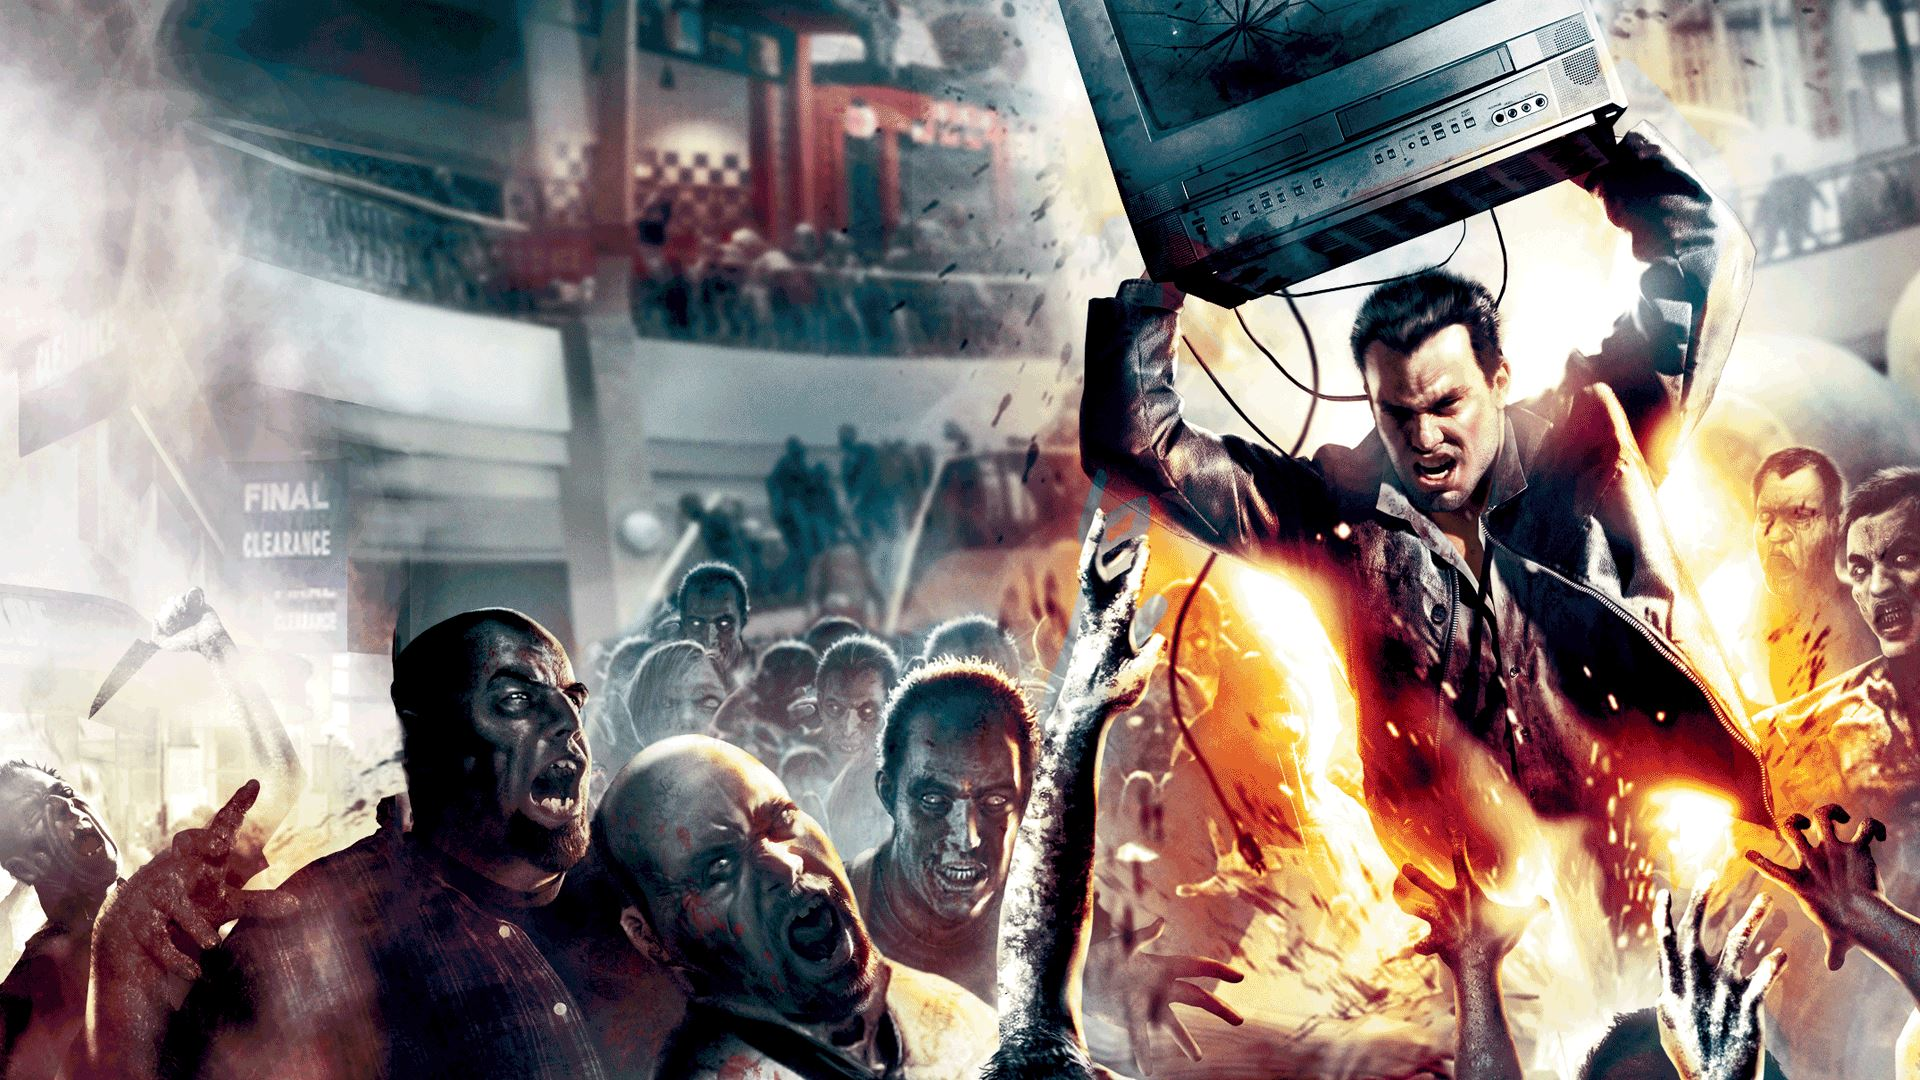 Dead island 2 free download full version pc game crack!